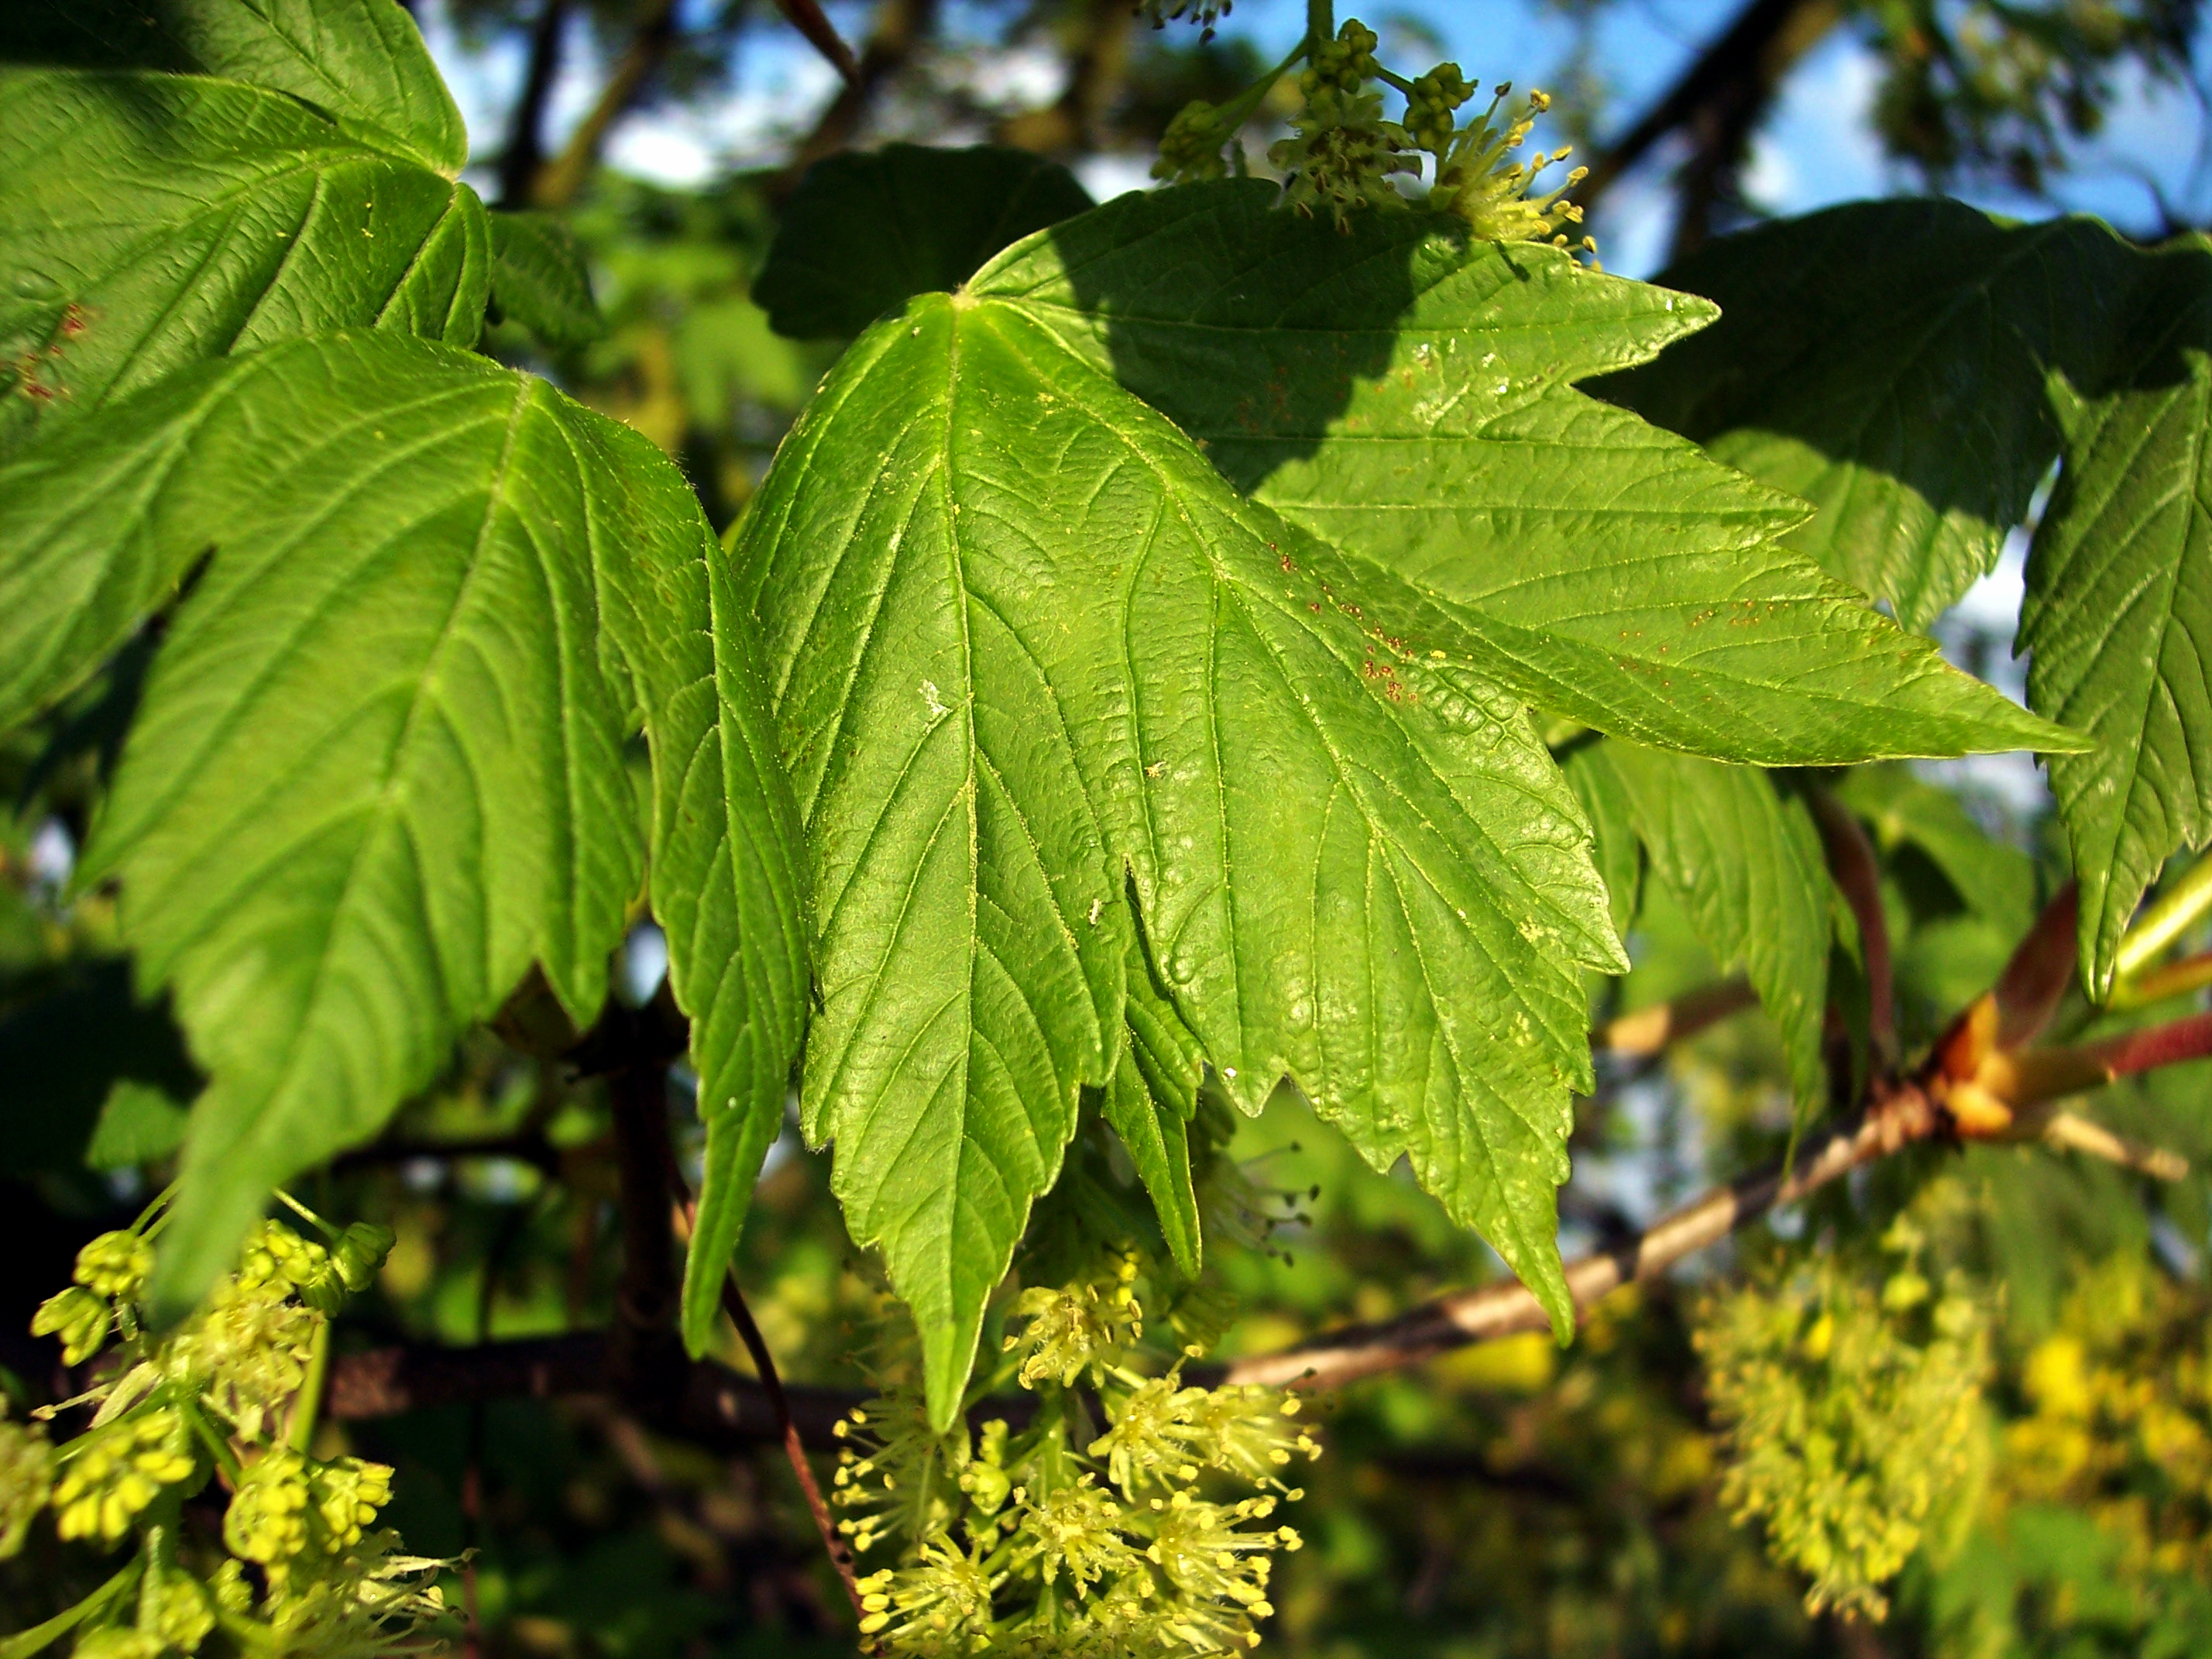 The sycamore tree can reach a height of 30-35 metres. It has distinctive 5-7 lobed leaves that are coarsely toothed. It can live for several hundred years. It flowers in April and May, producing small yellow green flowers on pendants. The fruit is winged and matures in late summer/early autumn enclo...